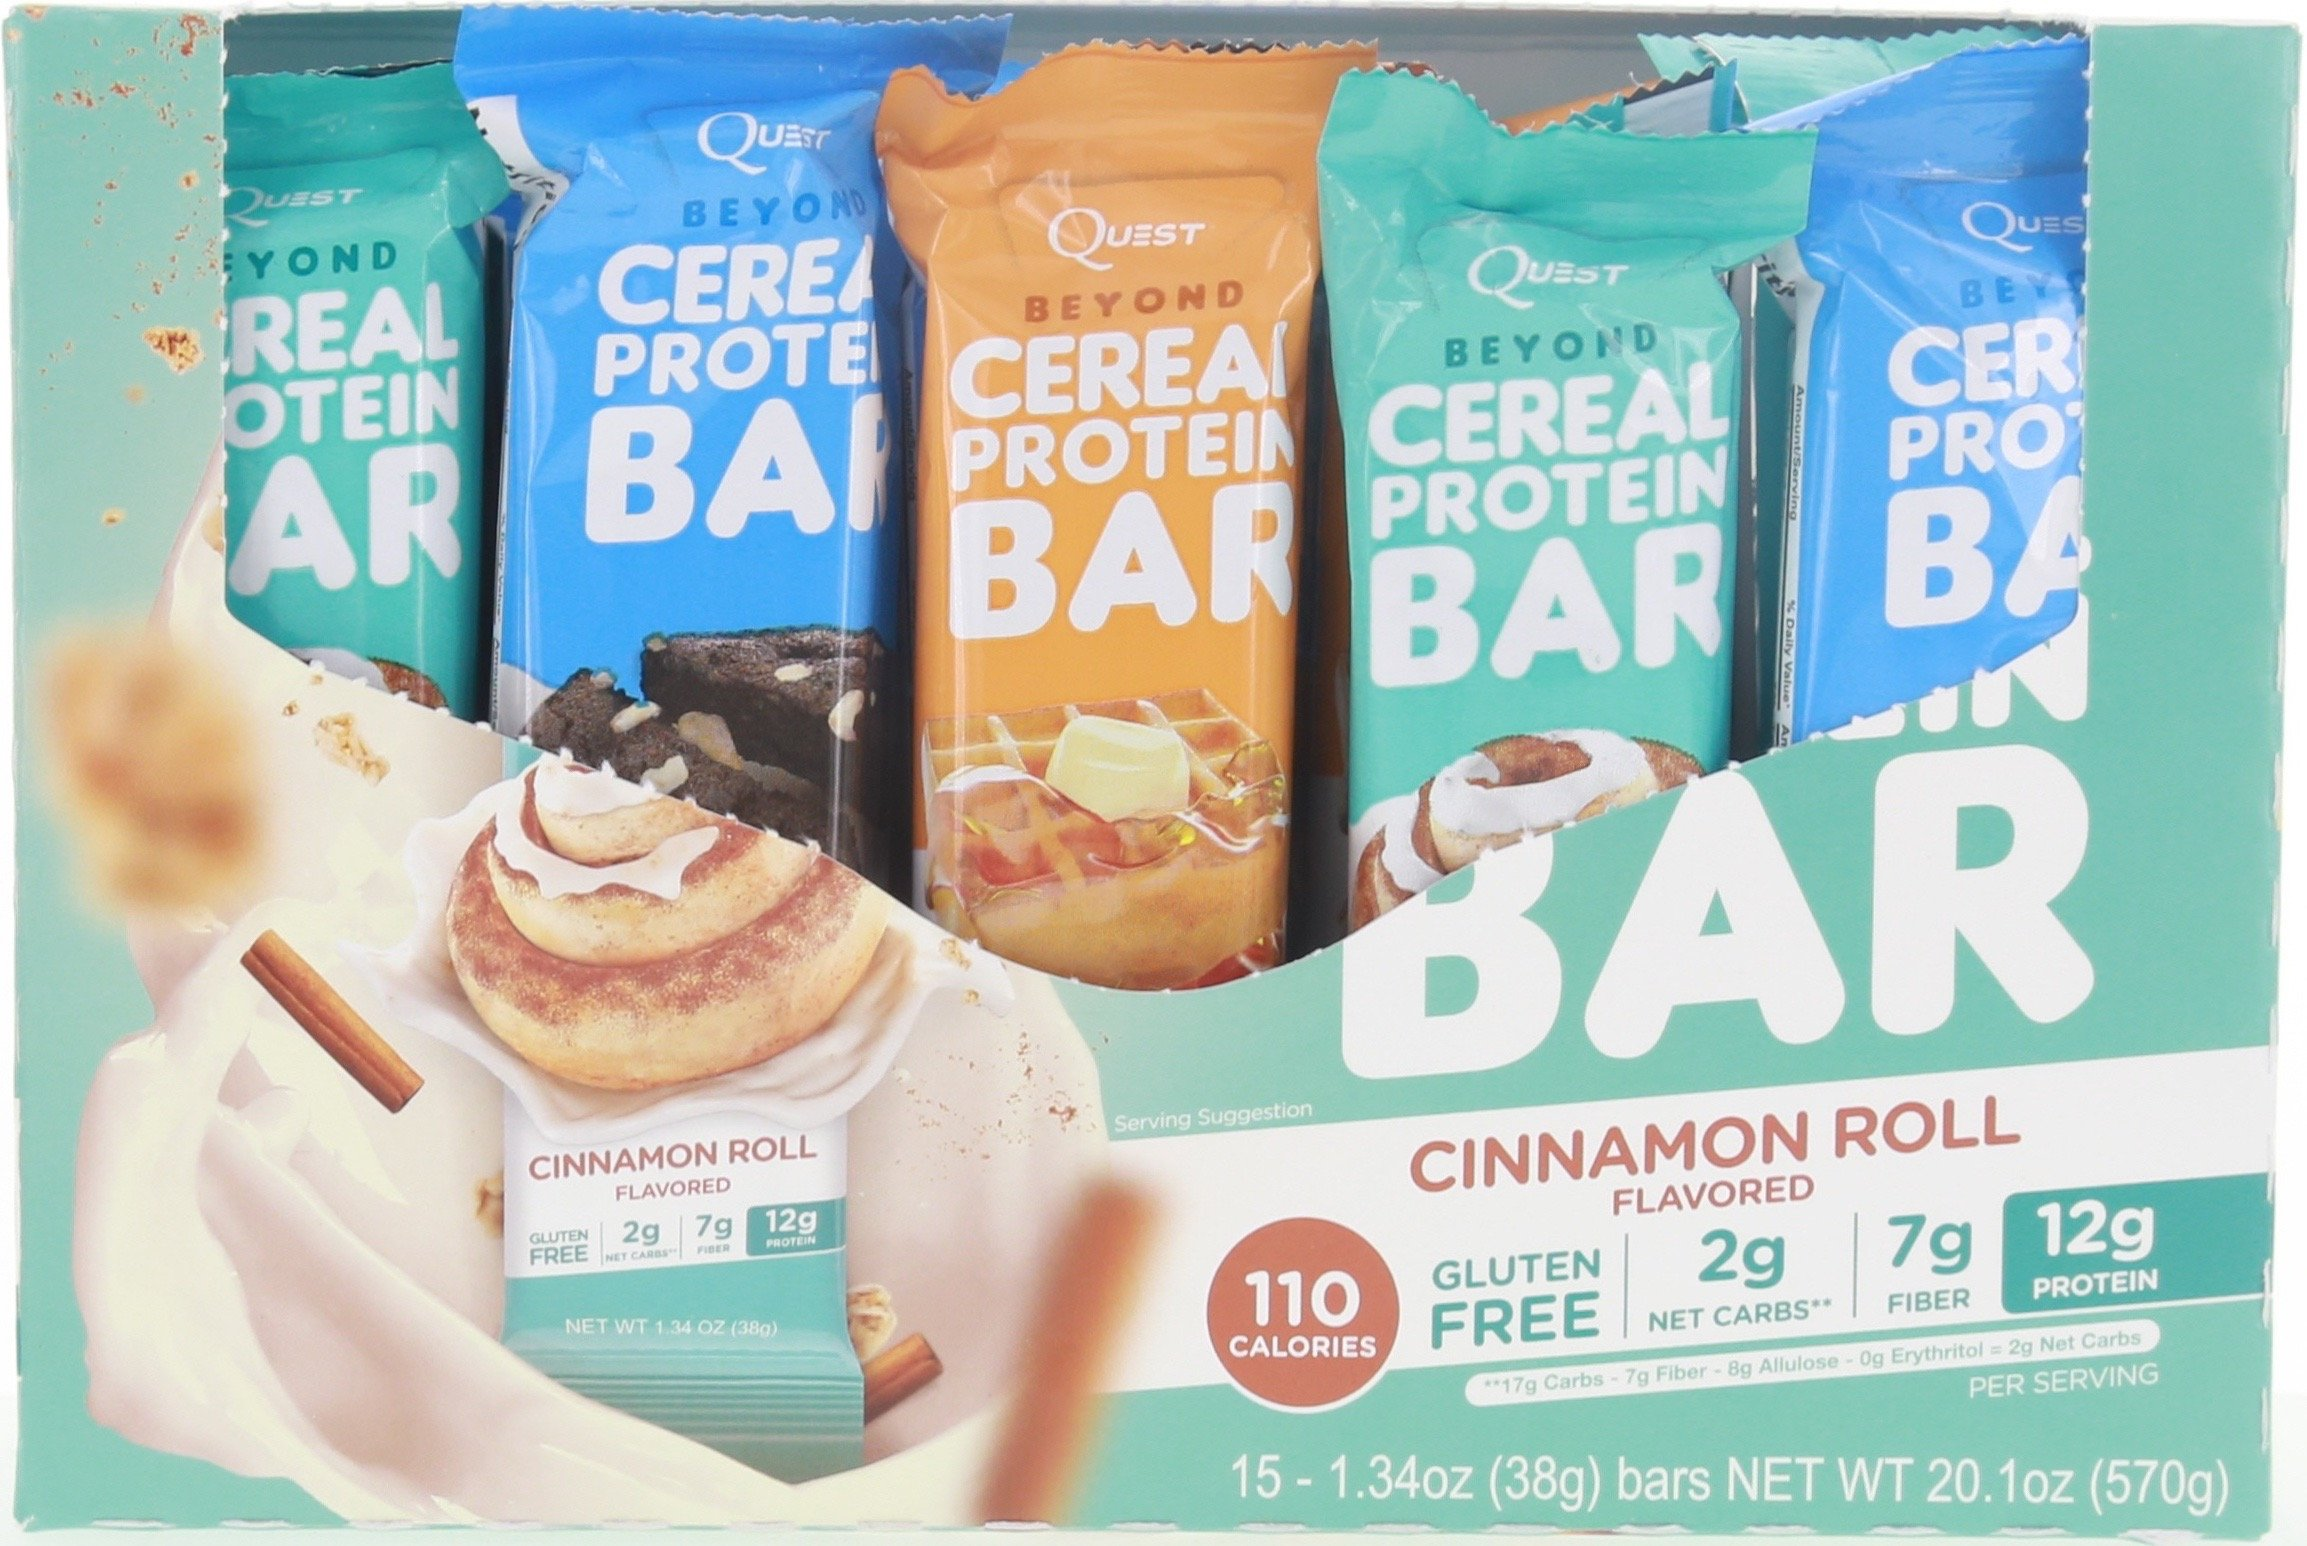 Quest Beyond Cereal Bar